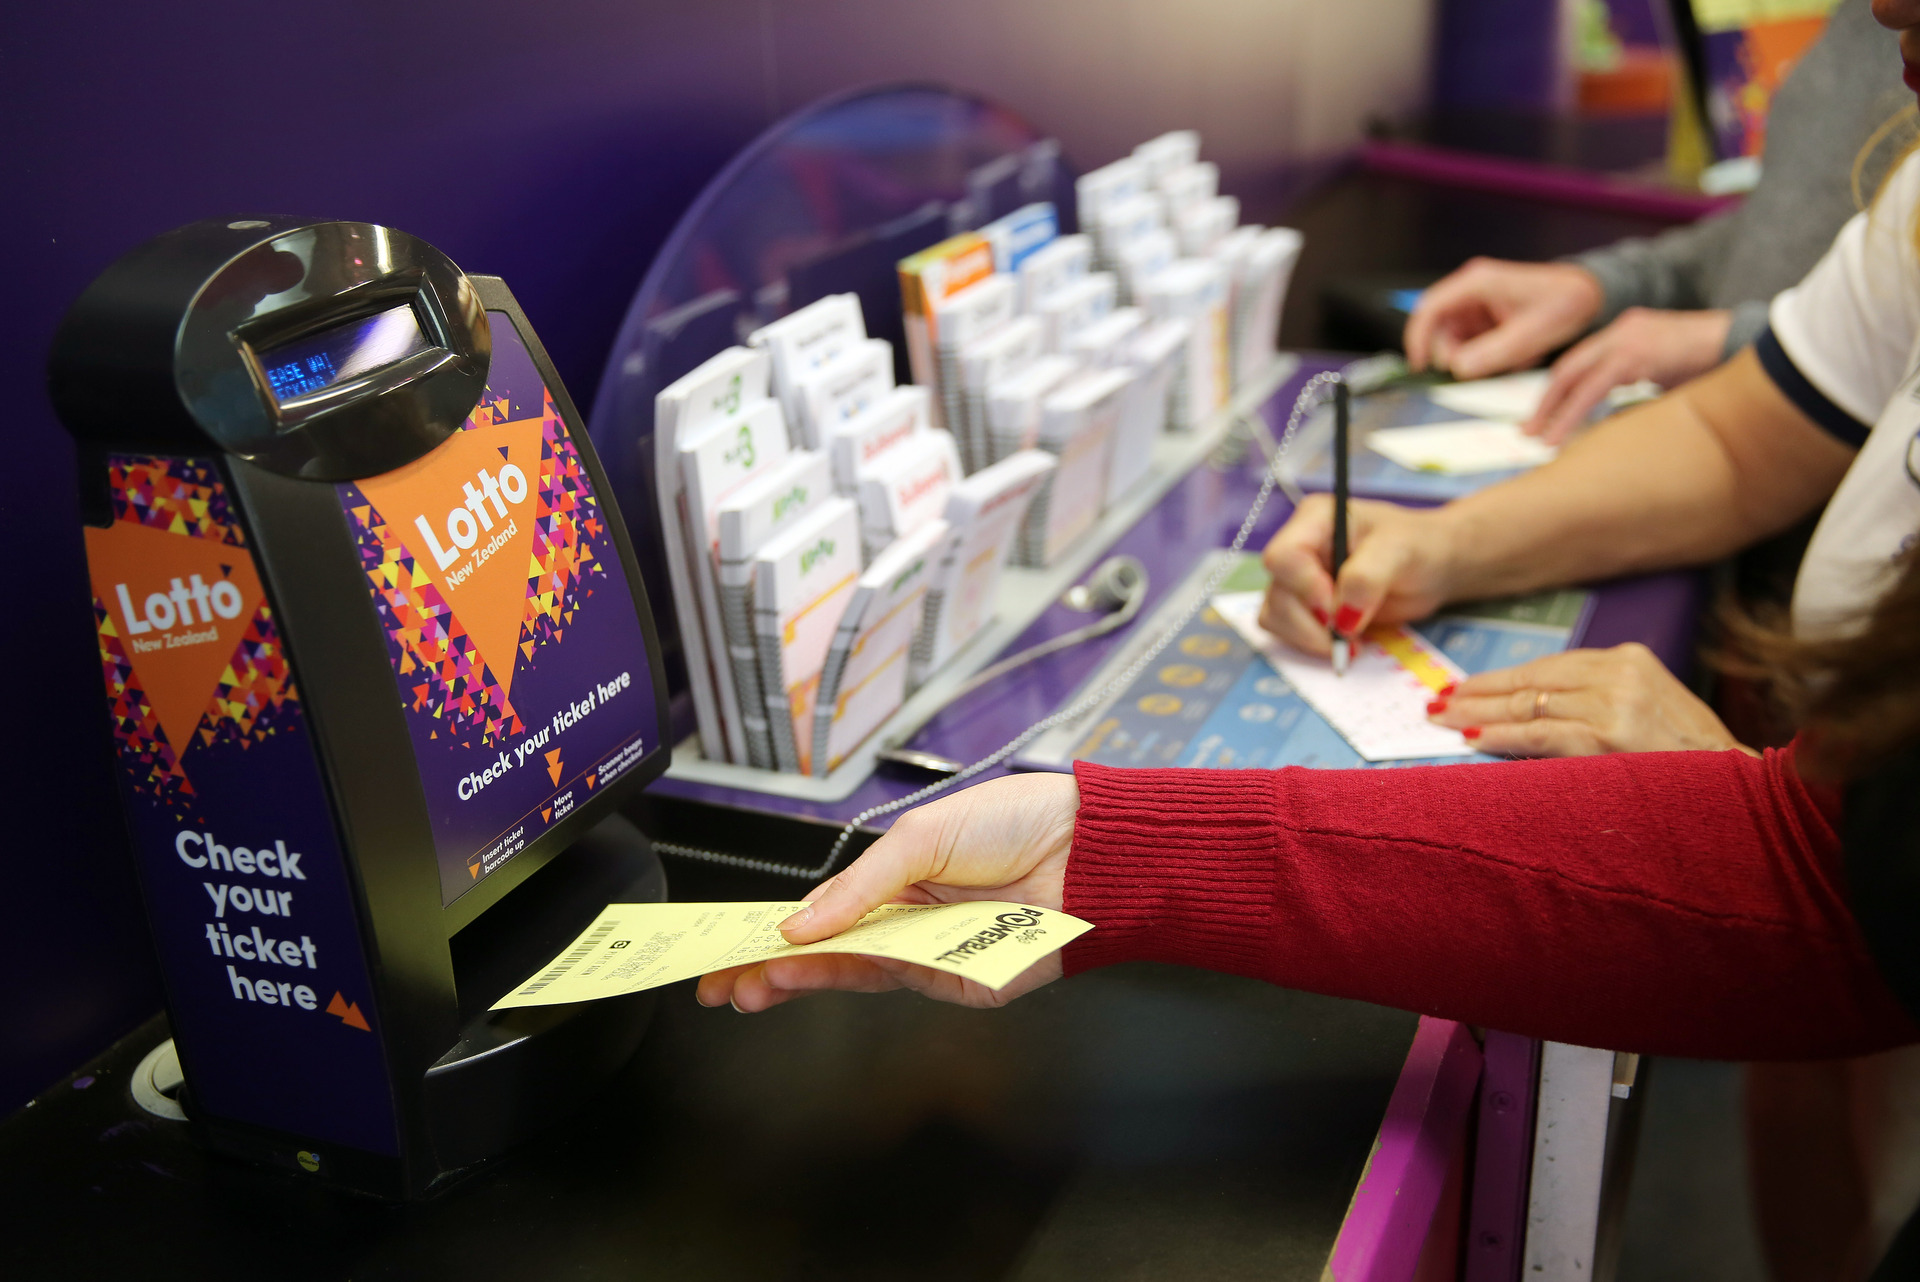 Two Auckland Lotto tickets share $1 million